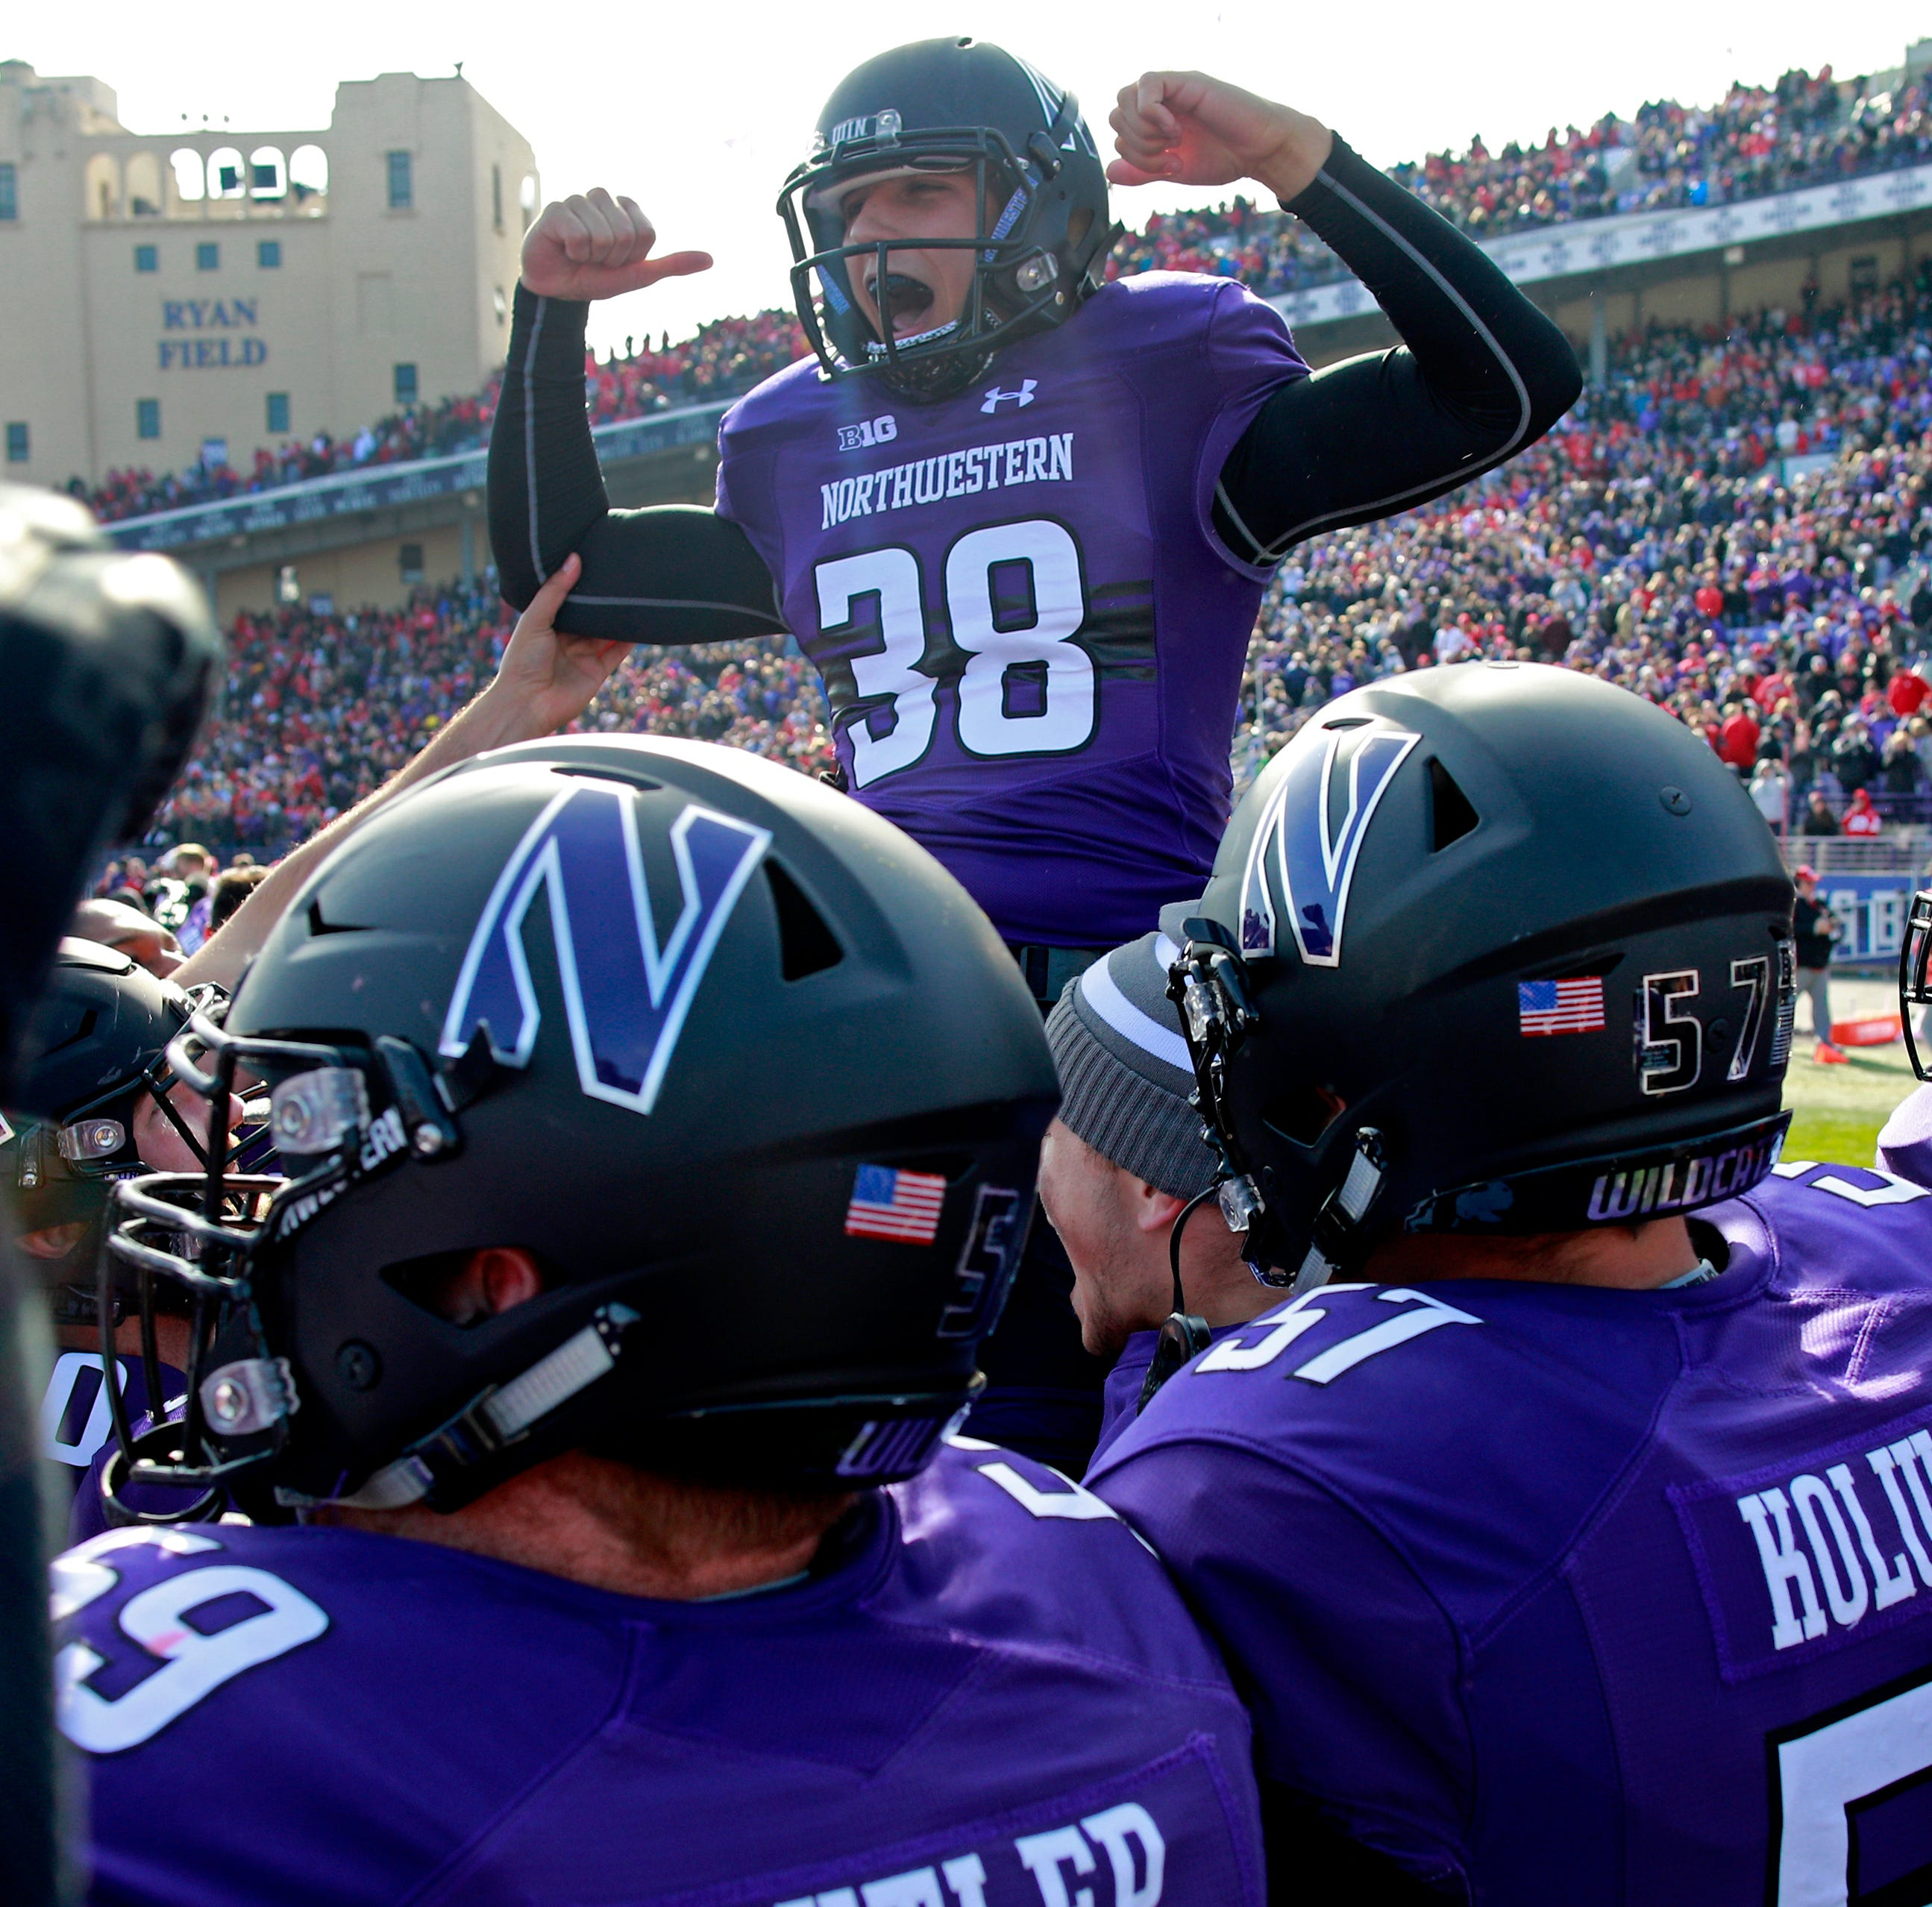 Spring Grove grad wins overtime game for Northwestern football